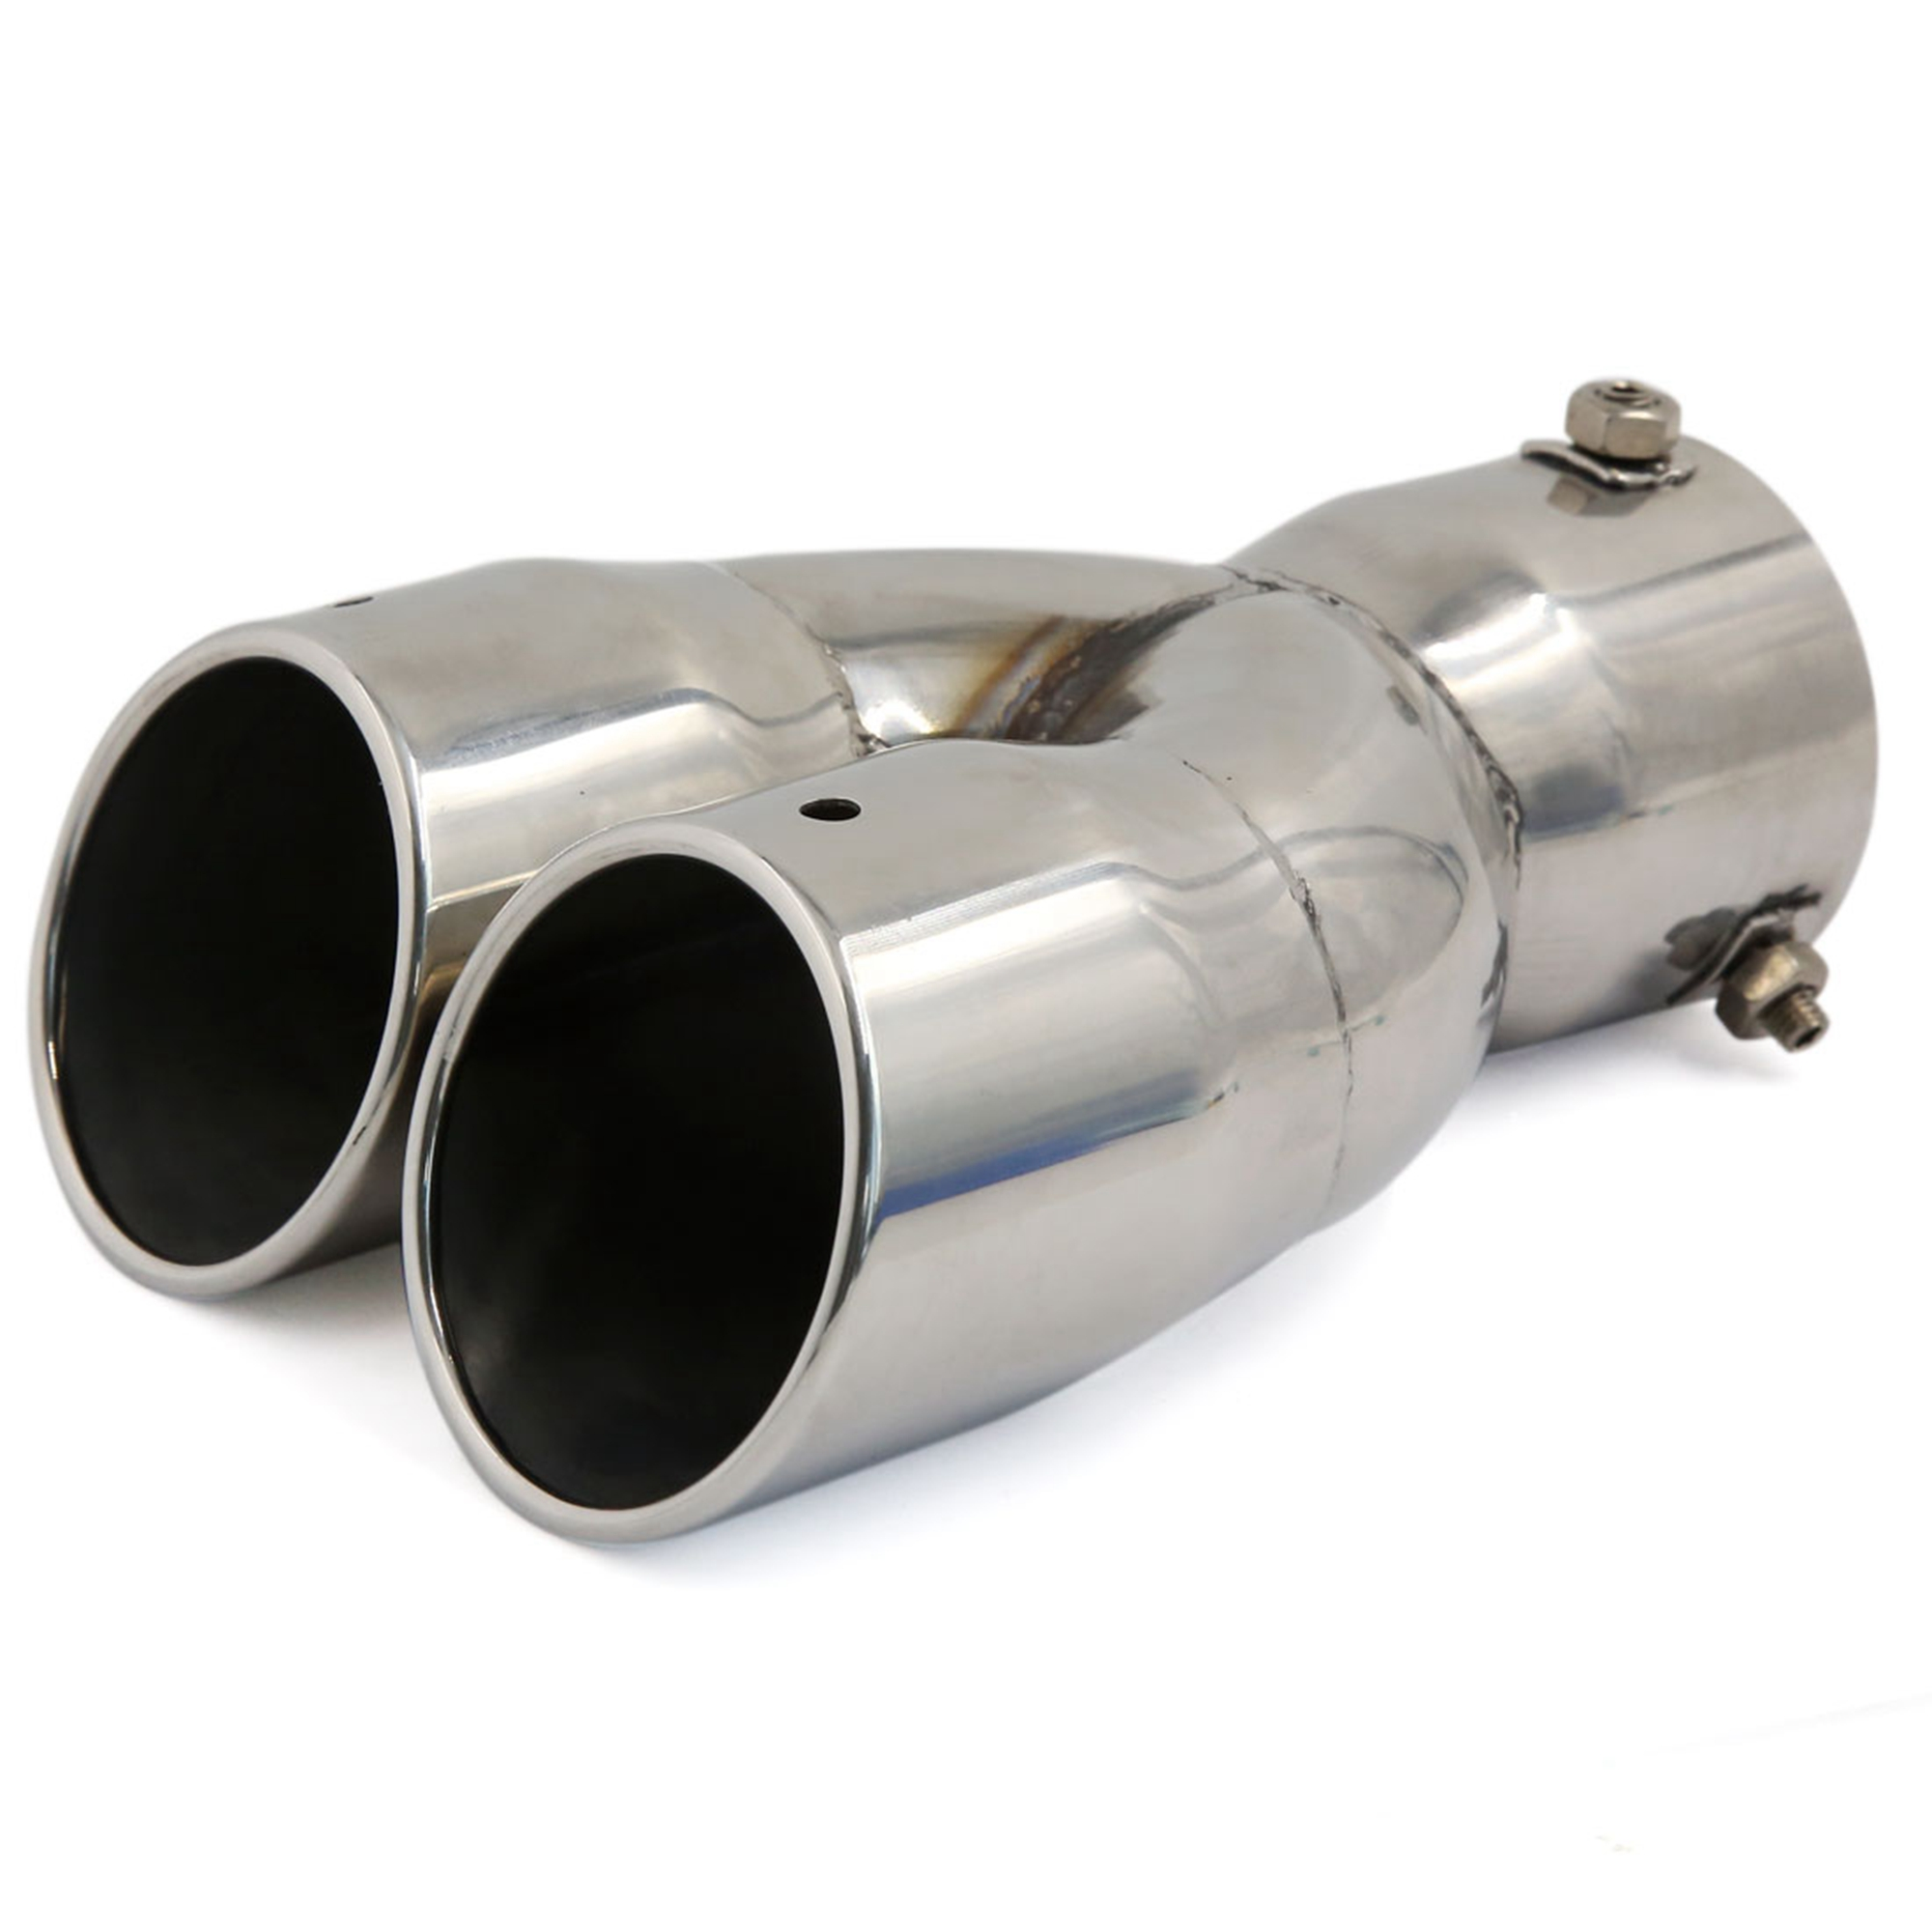 """3"""" Inlet Dia Double Row Stainless Steel Exhaust Muffler Tip for Auto Car"""